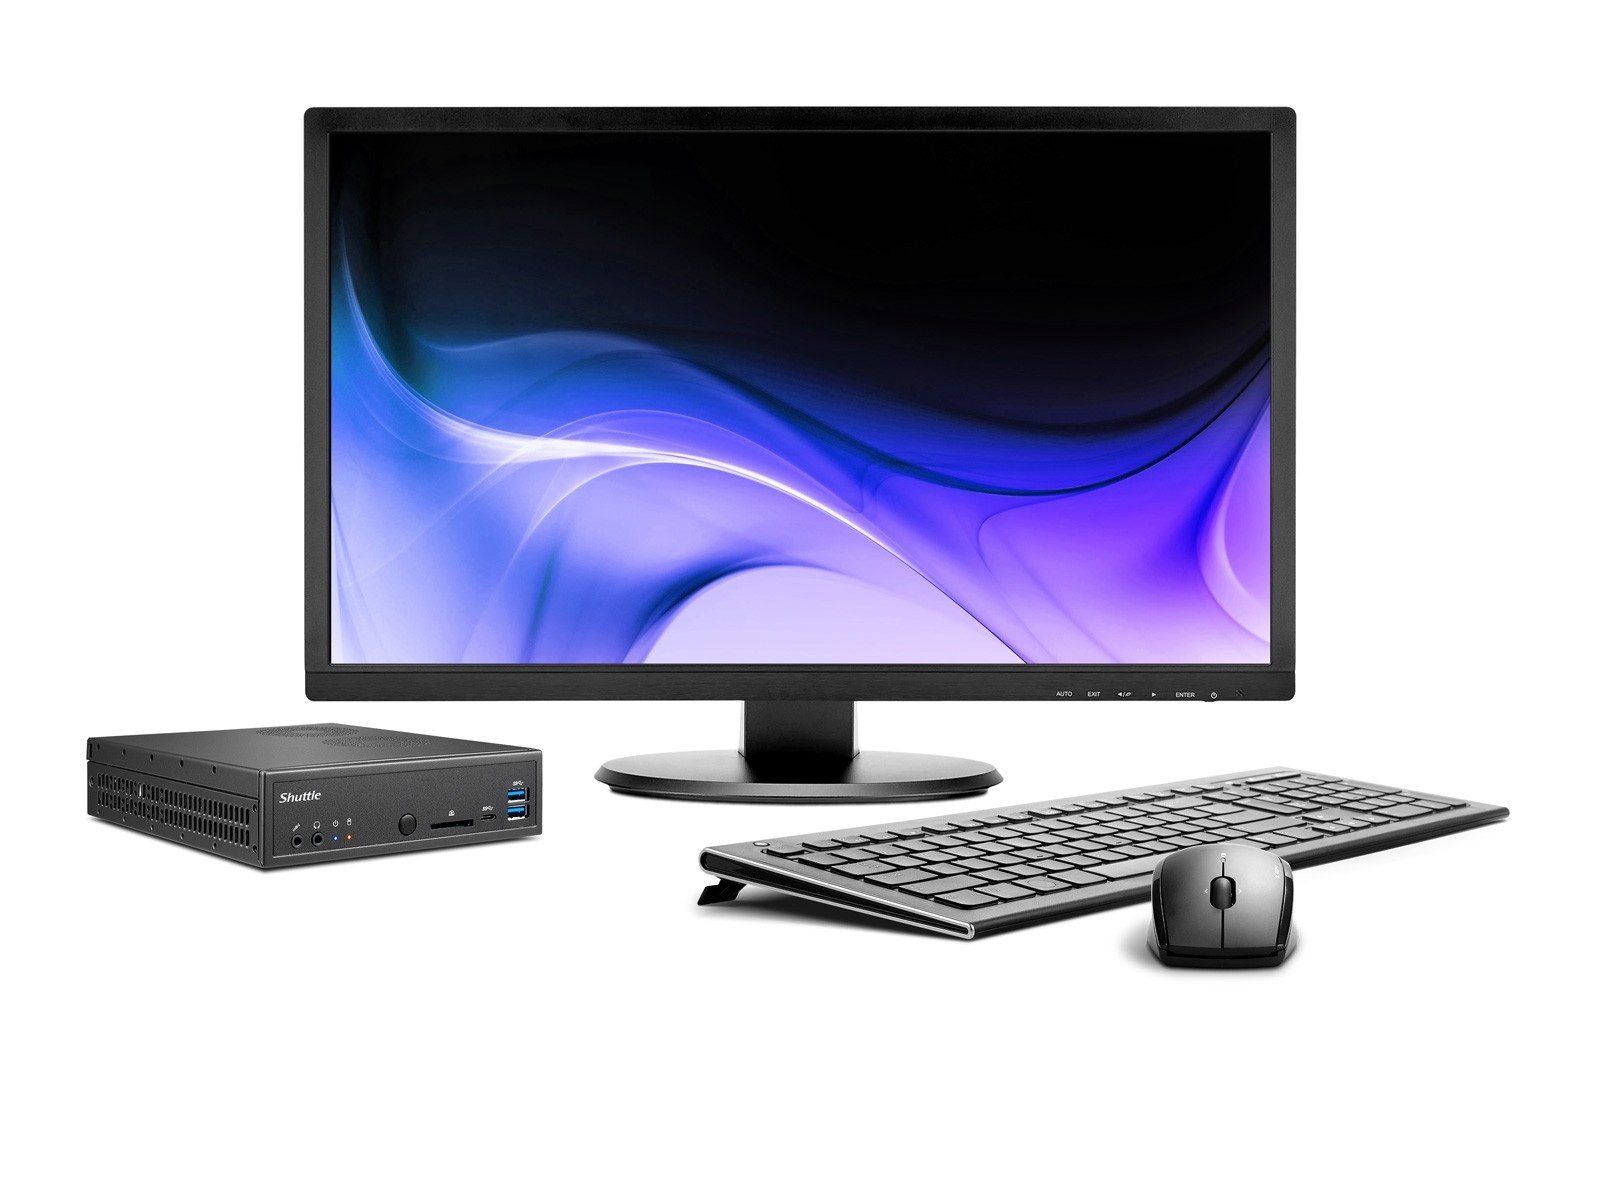 Shuttle Slim D2700B - Mini-PC robuste doté d'un port HDMI 2.0